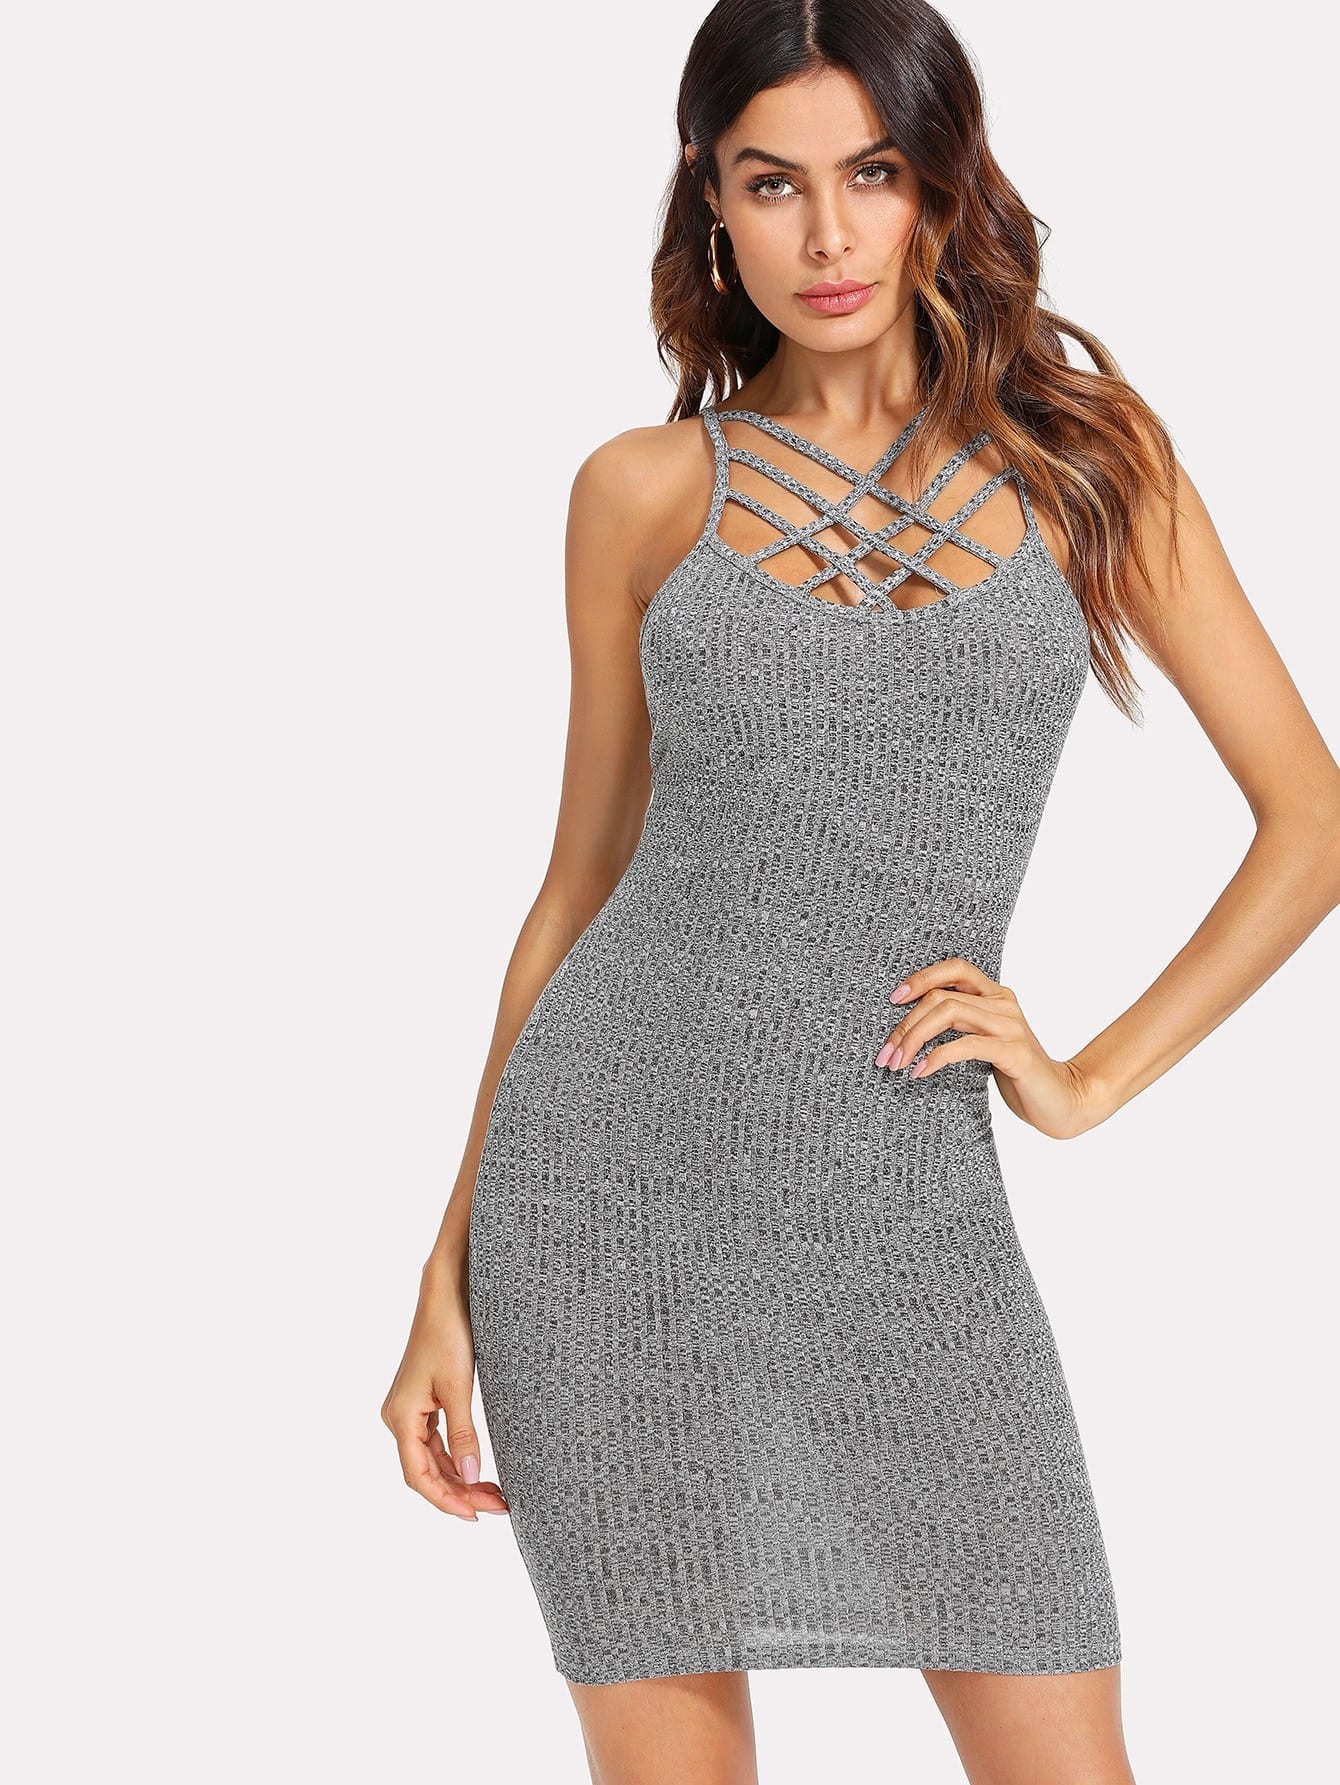 Strappy Front Backless Ribbed Marled Dress strappy backless club dress